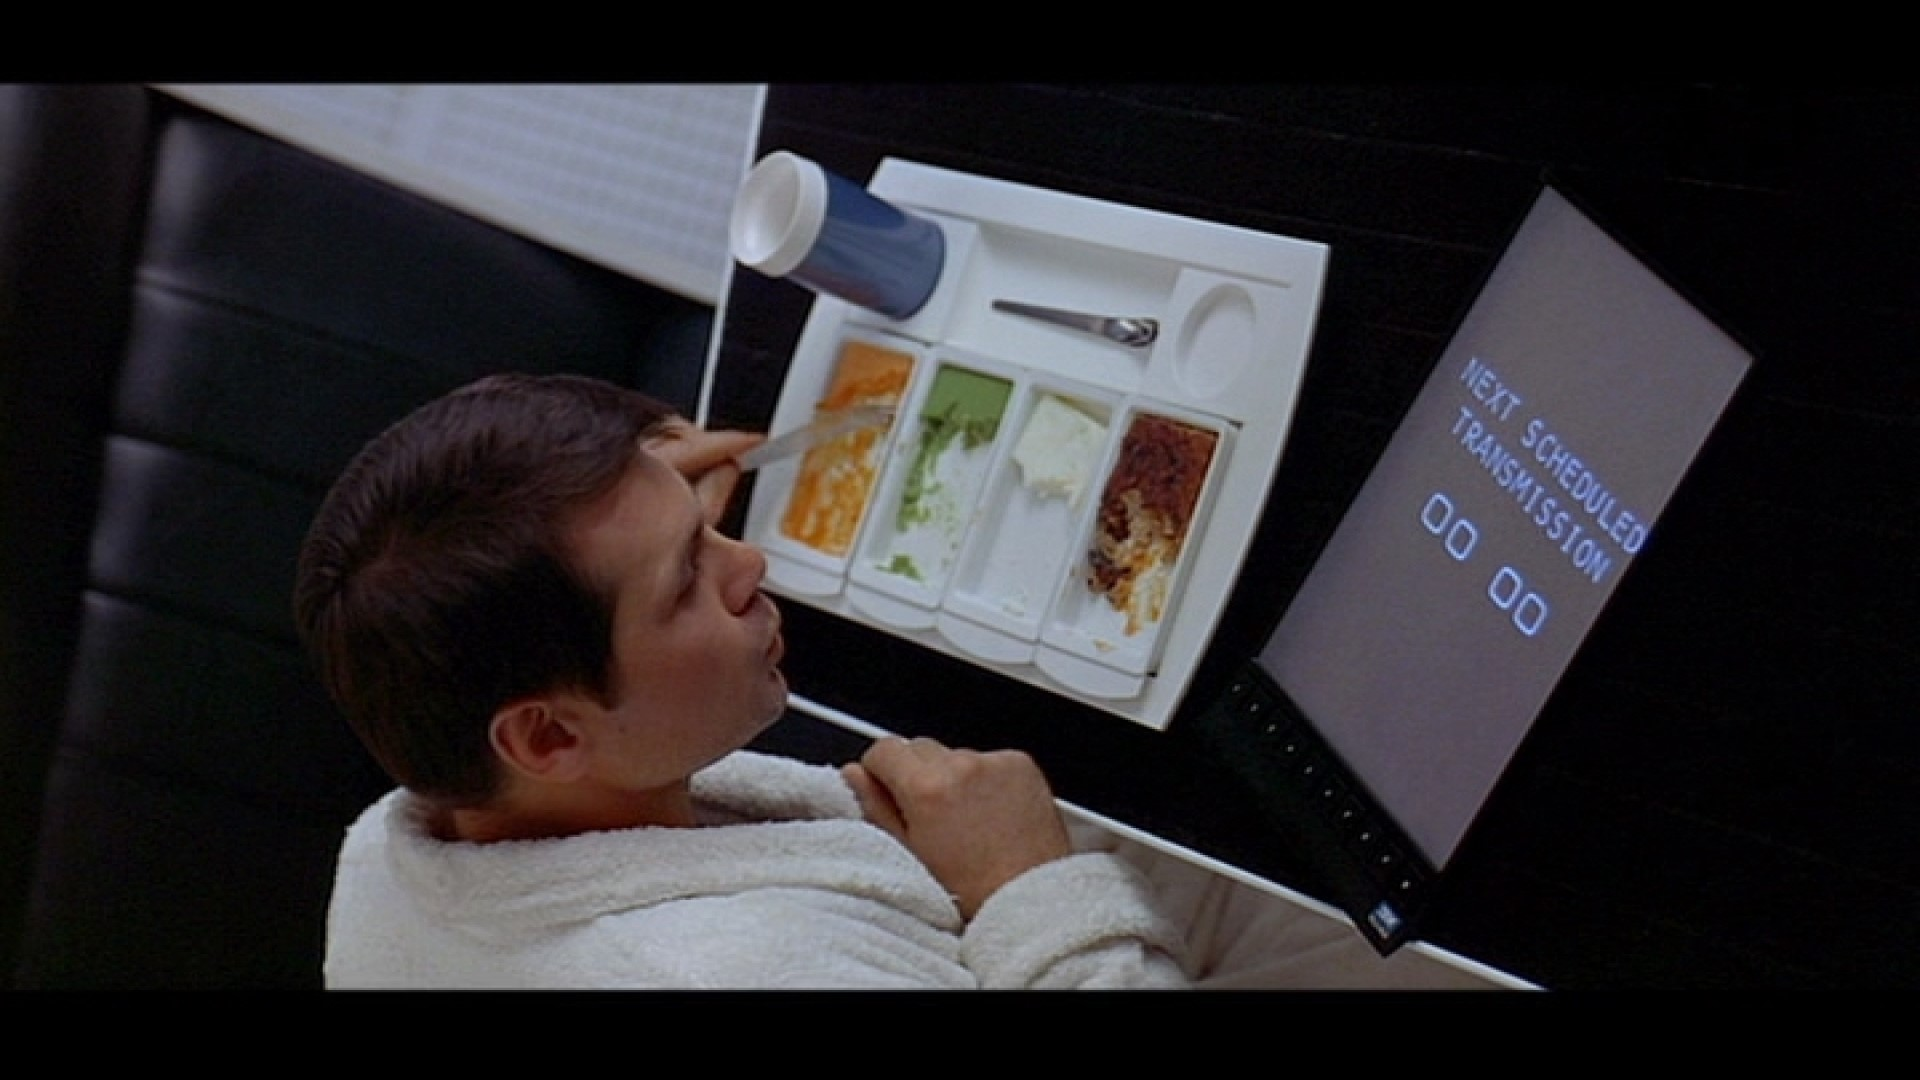 2001: A SPACE ODYSSEY (1968) - Discovery One Cutlery - Image 6 of 8